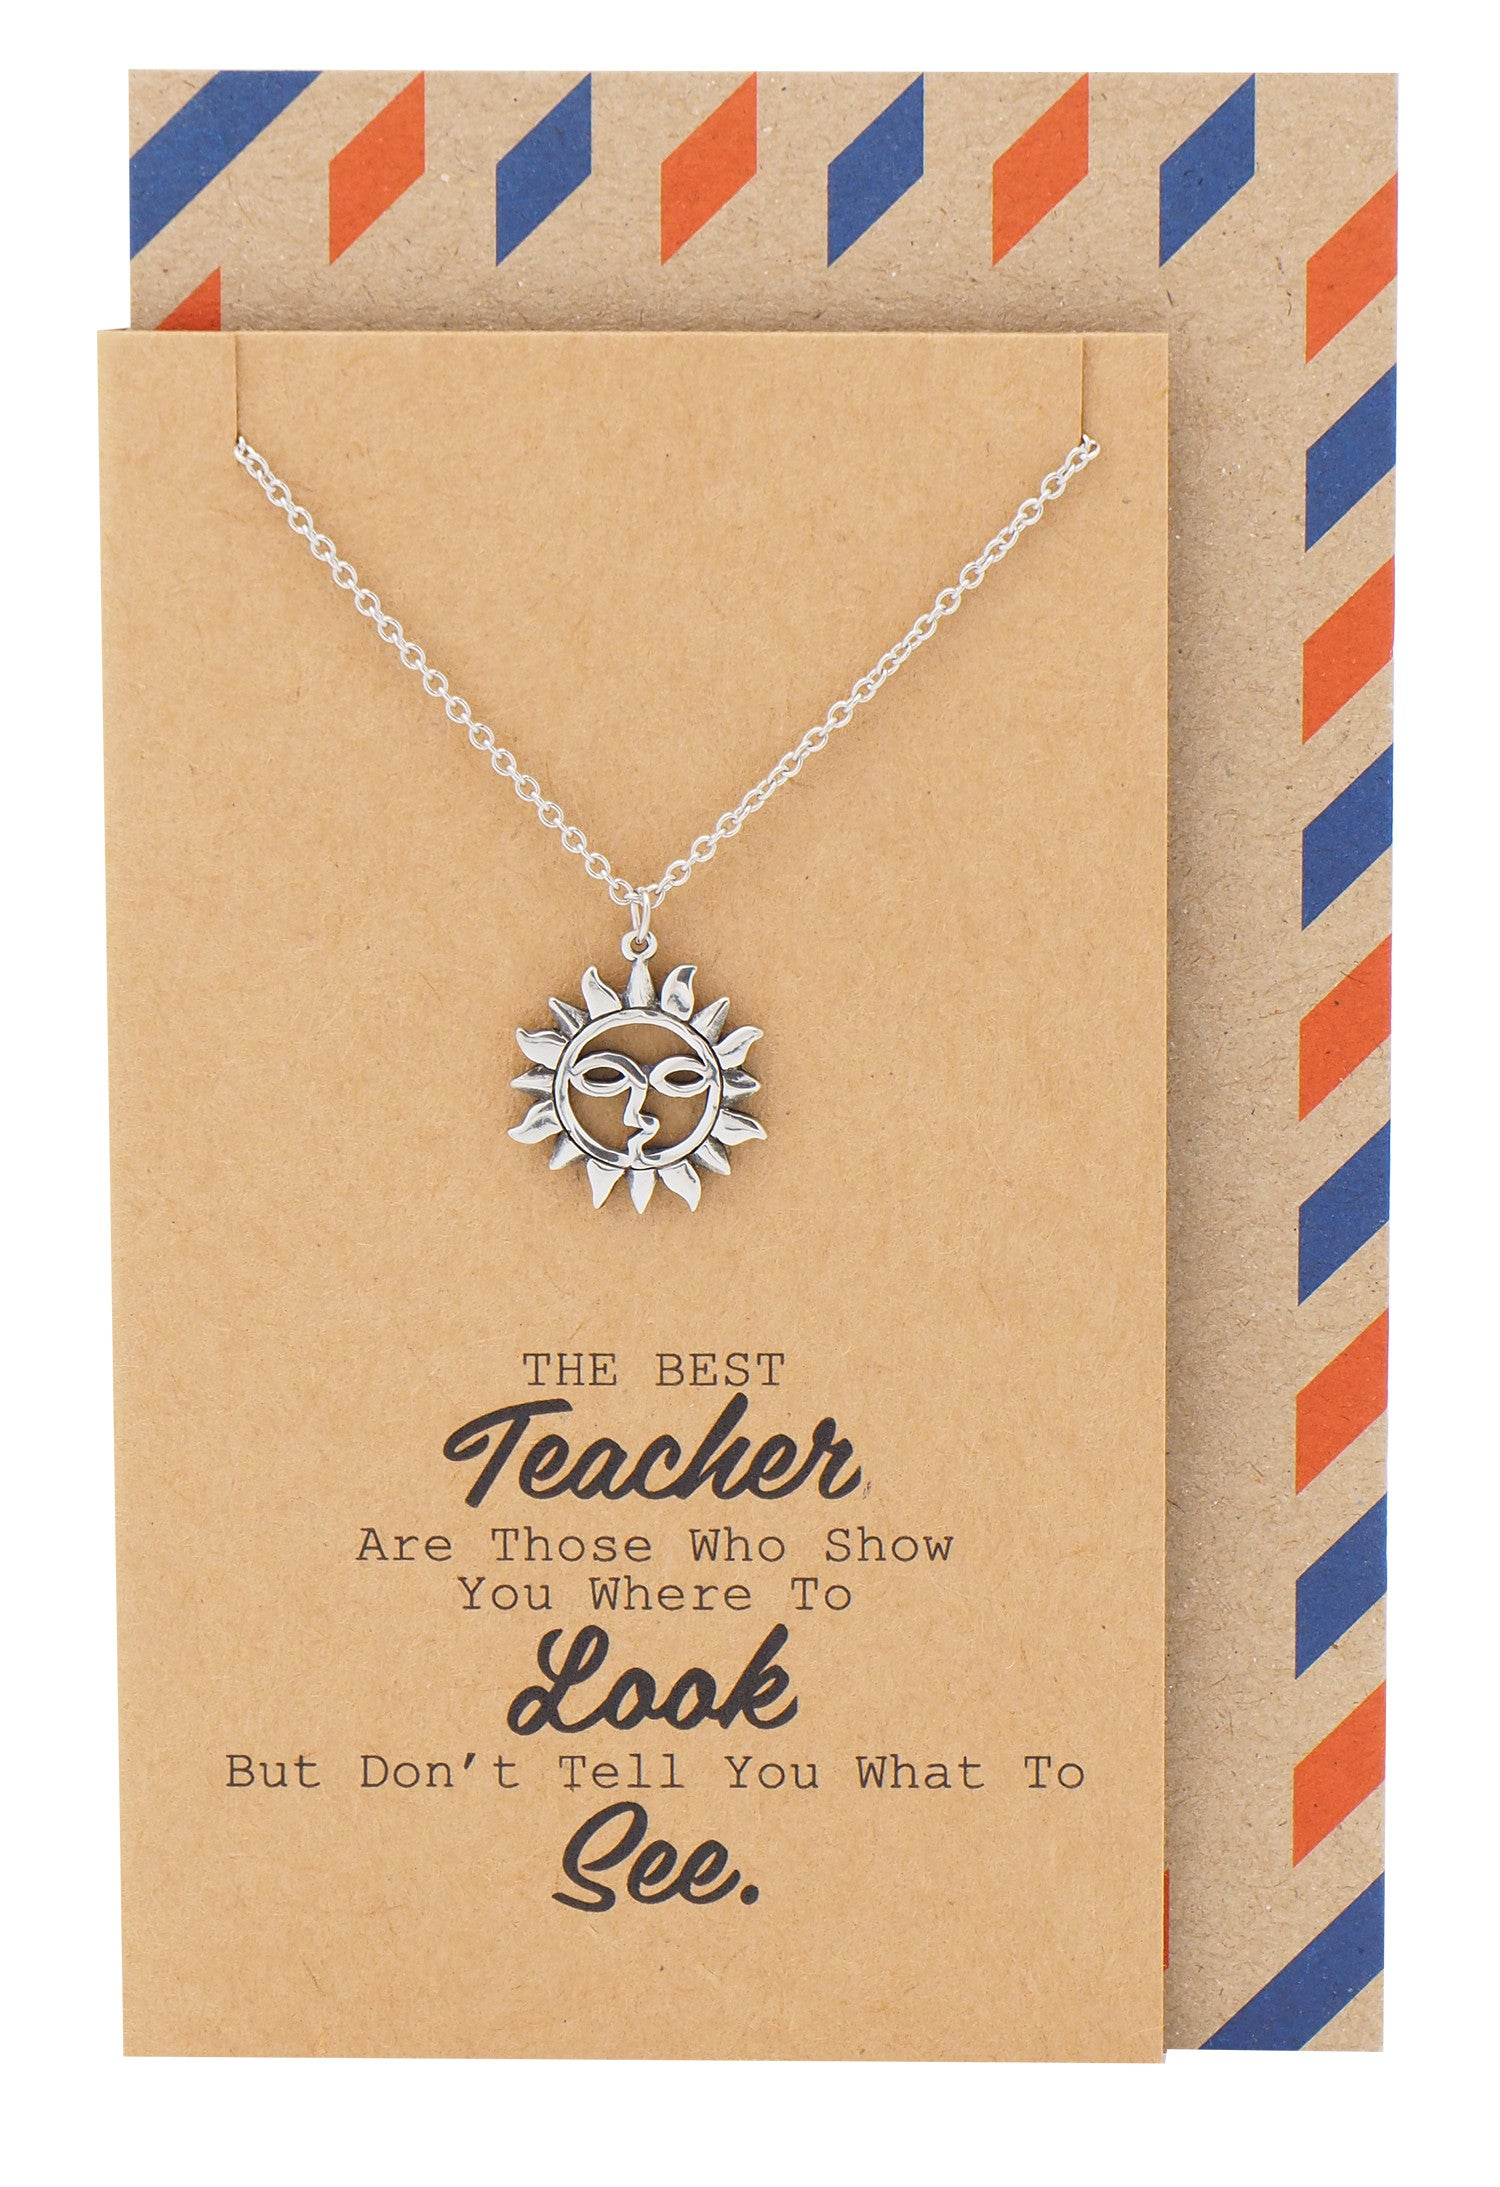 katniss teachers gifts arrow necklace and inspirational quote